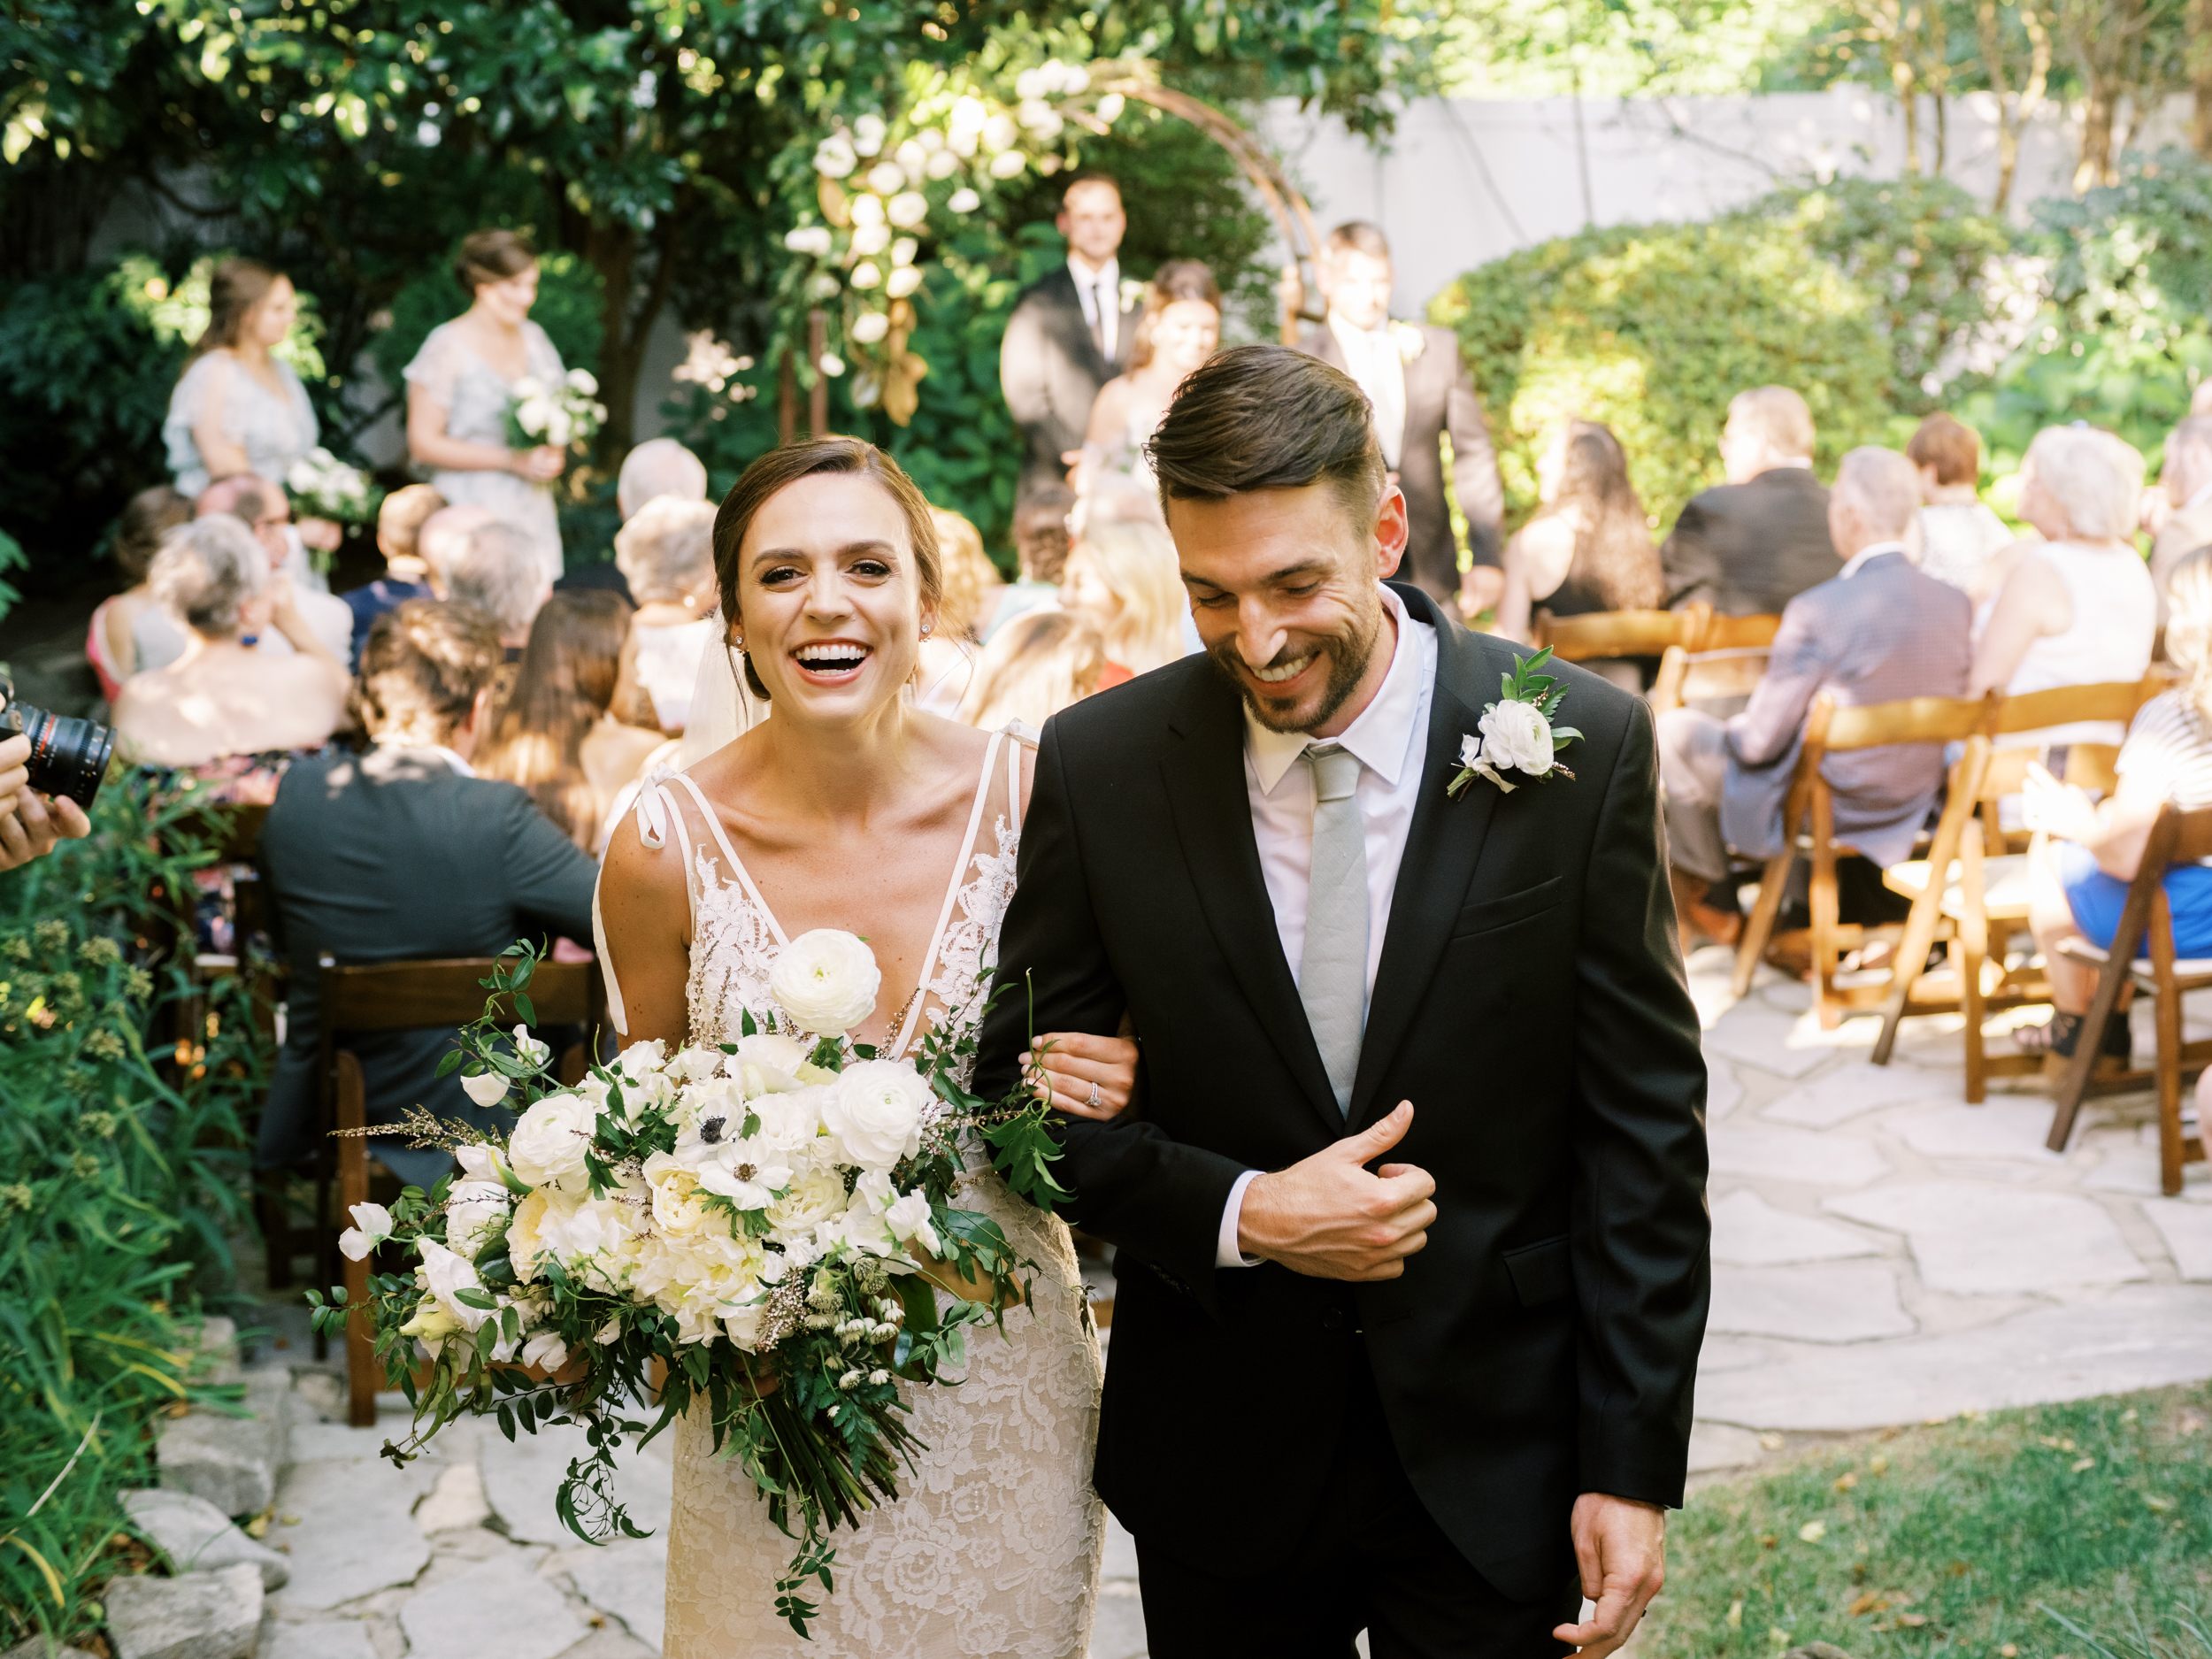 Catey + Paul: An Intimate, Floral-Inspired Affair